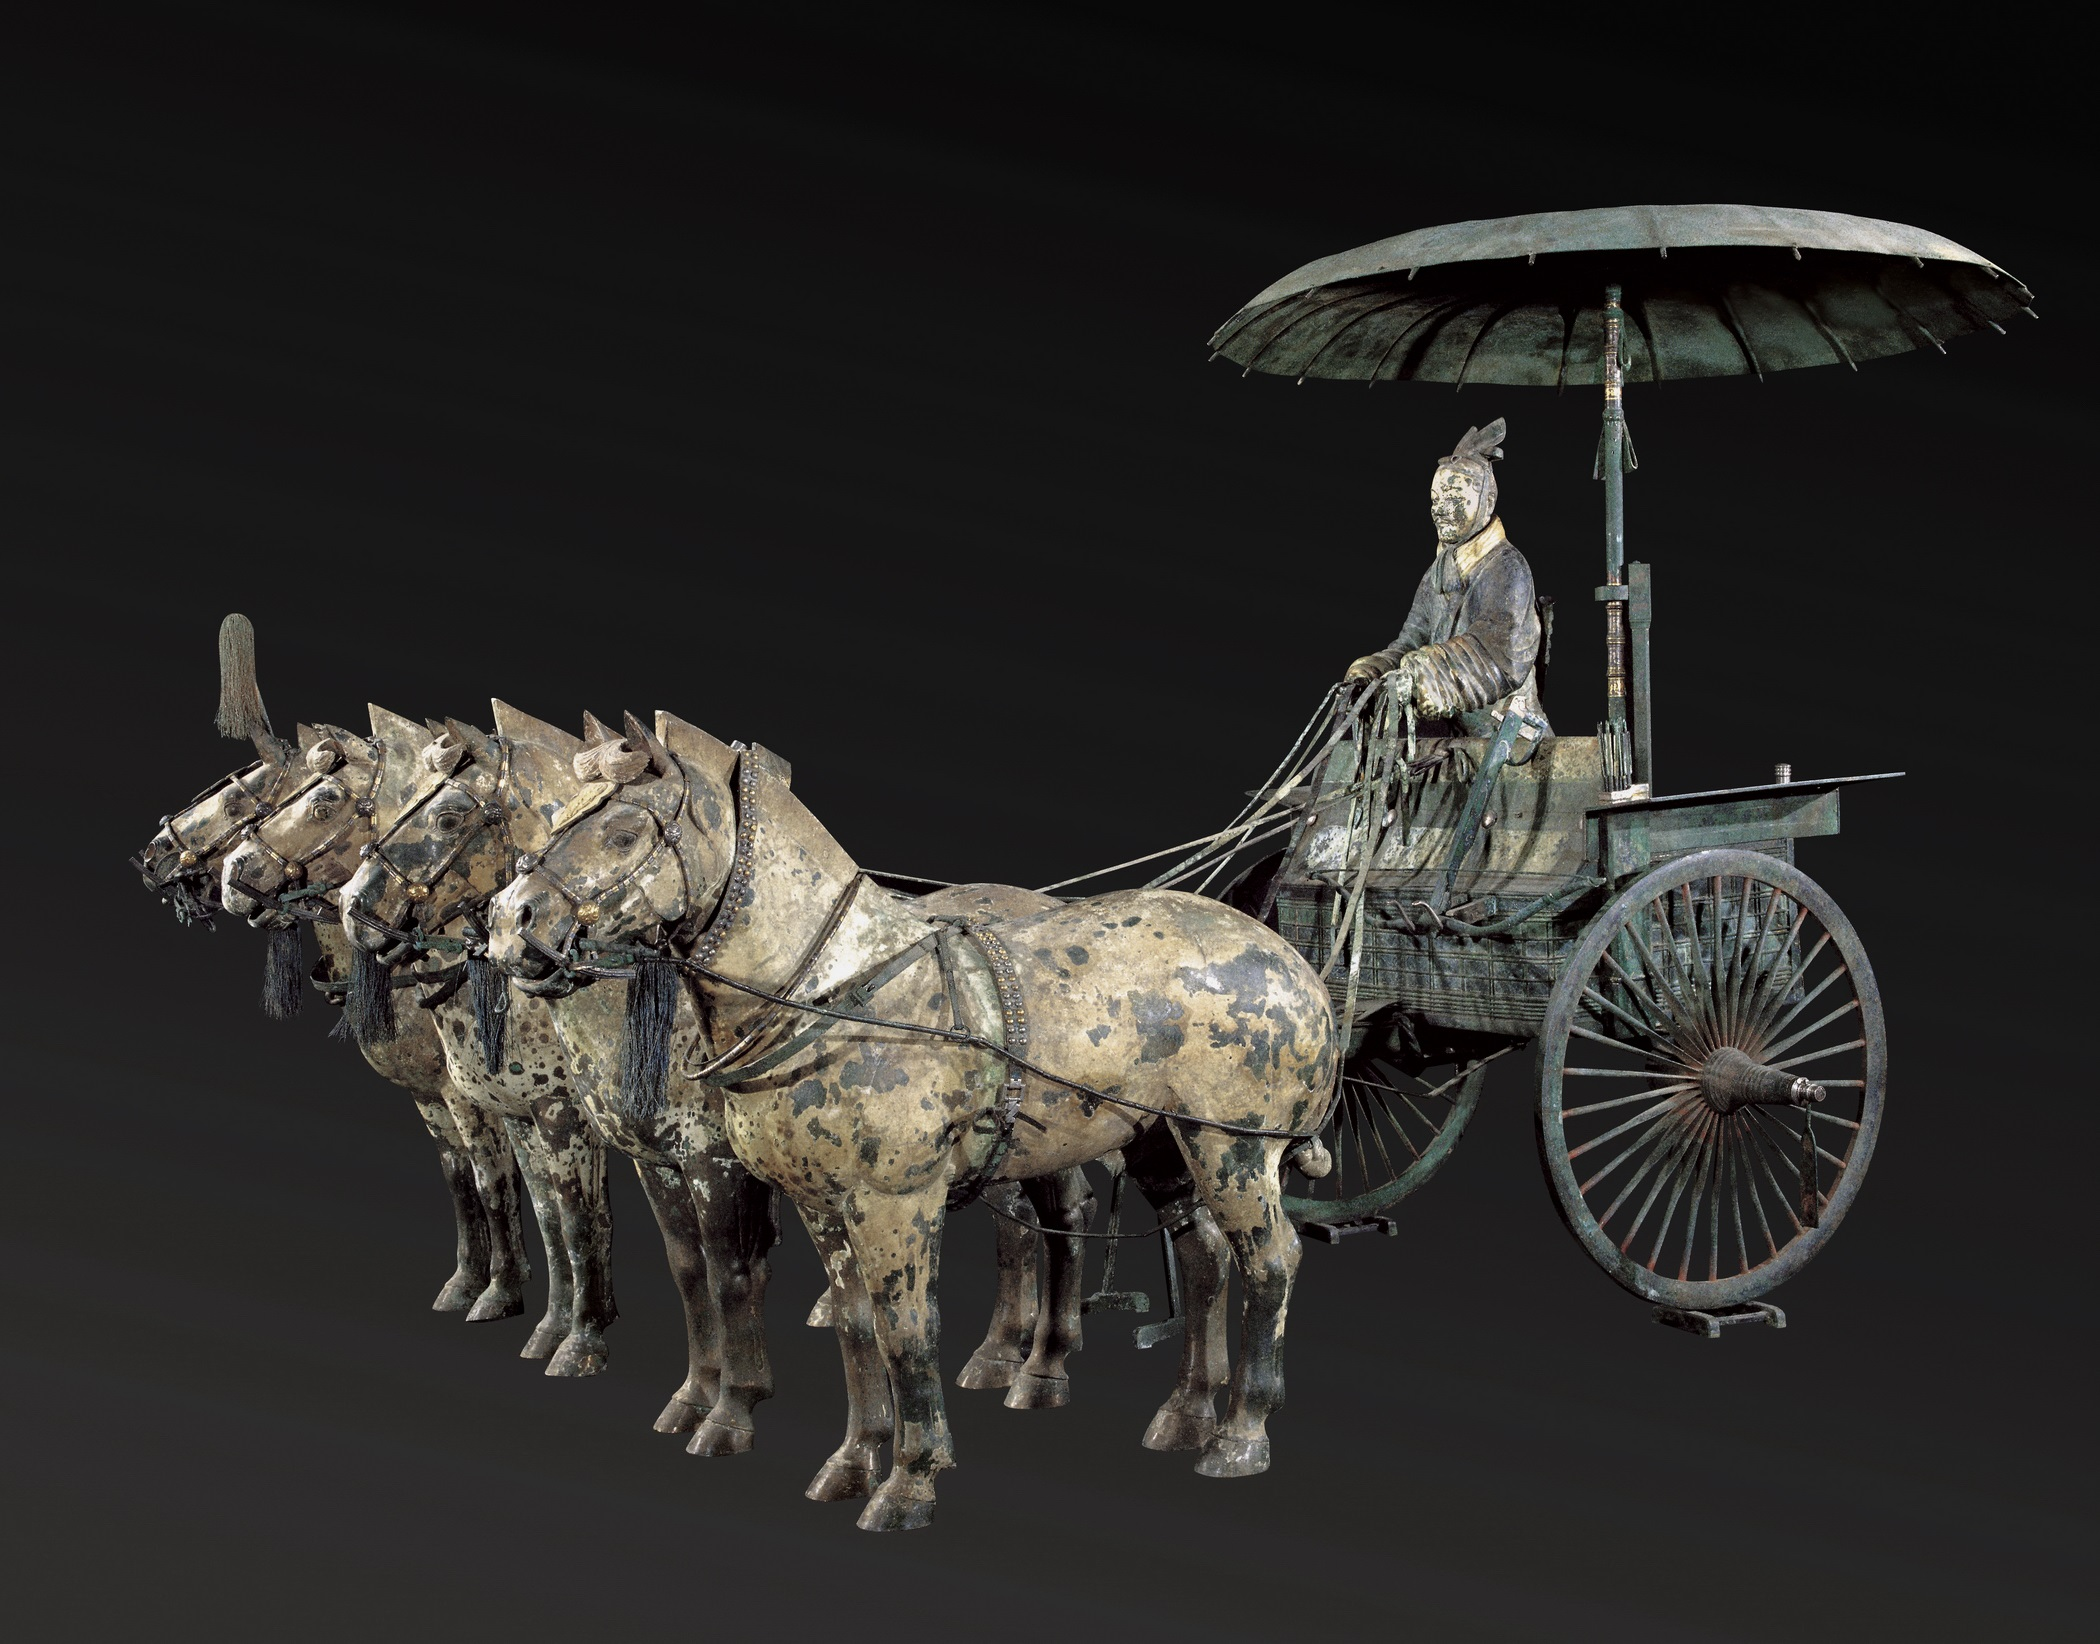 Replica chariot. (© Mr. Ziyu Qiu)